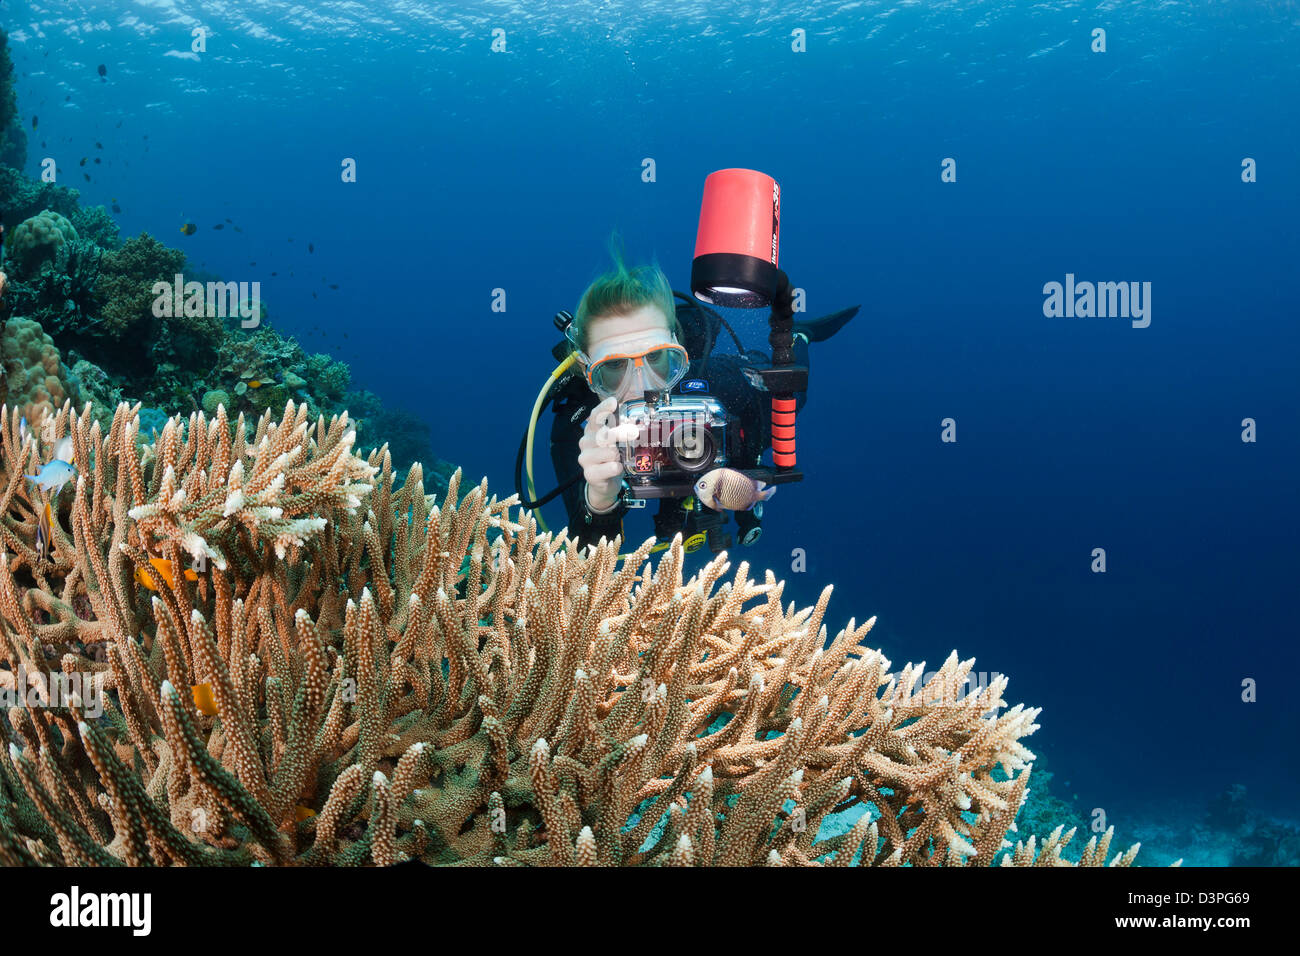 A diver (MR) lines up her camera on a damselfish near a large colony of antler coral, Wakatobi, Indonesia. - Stock Image